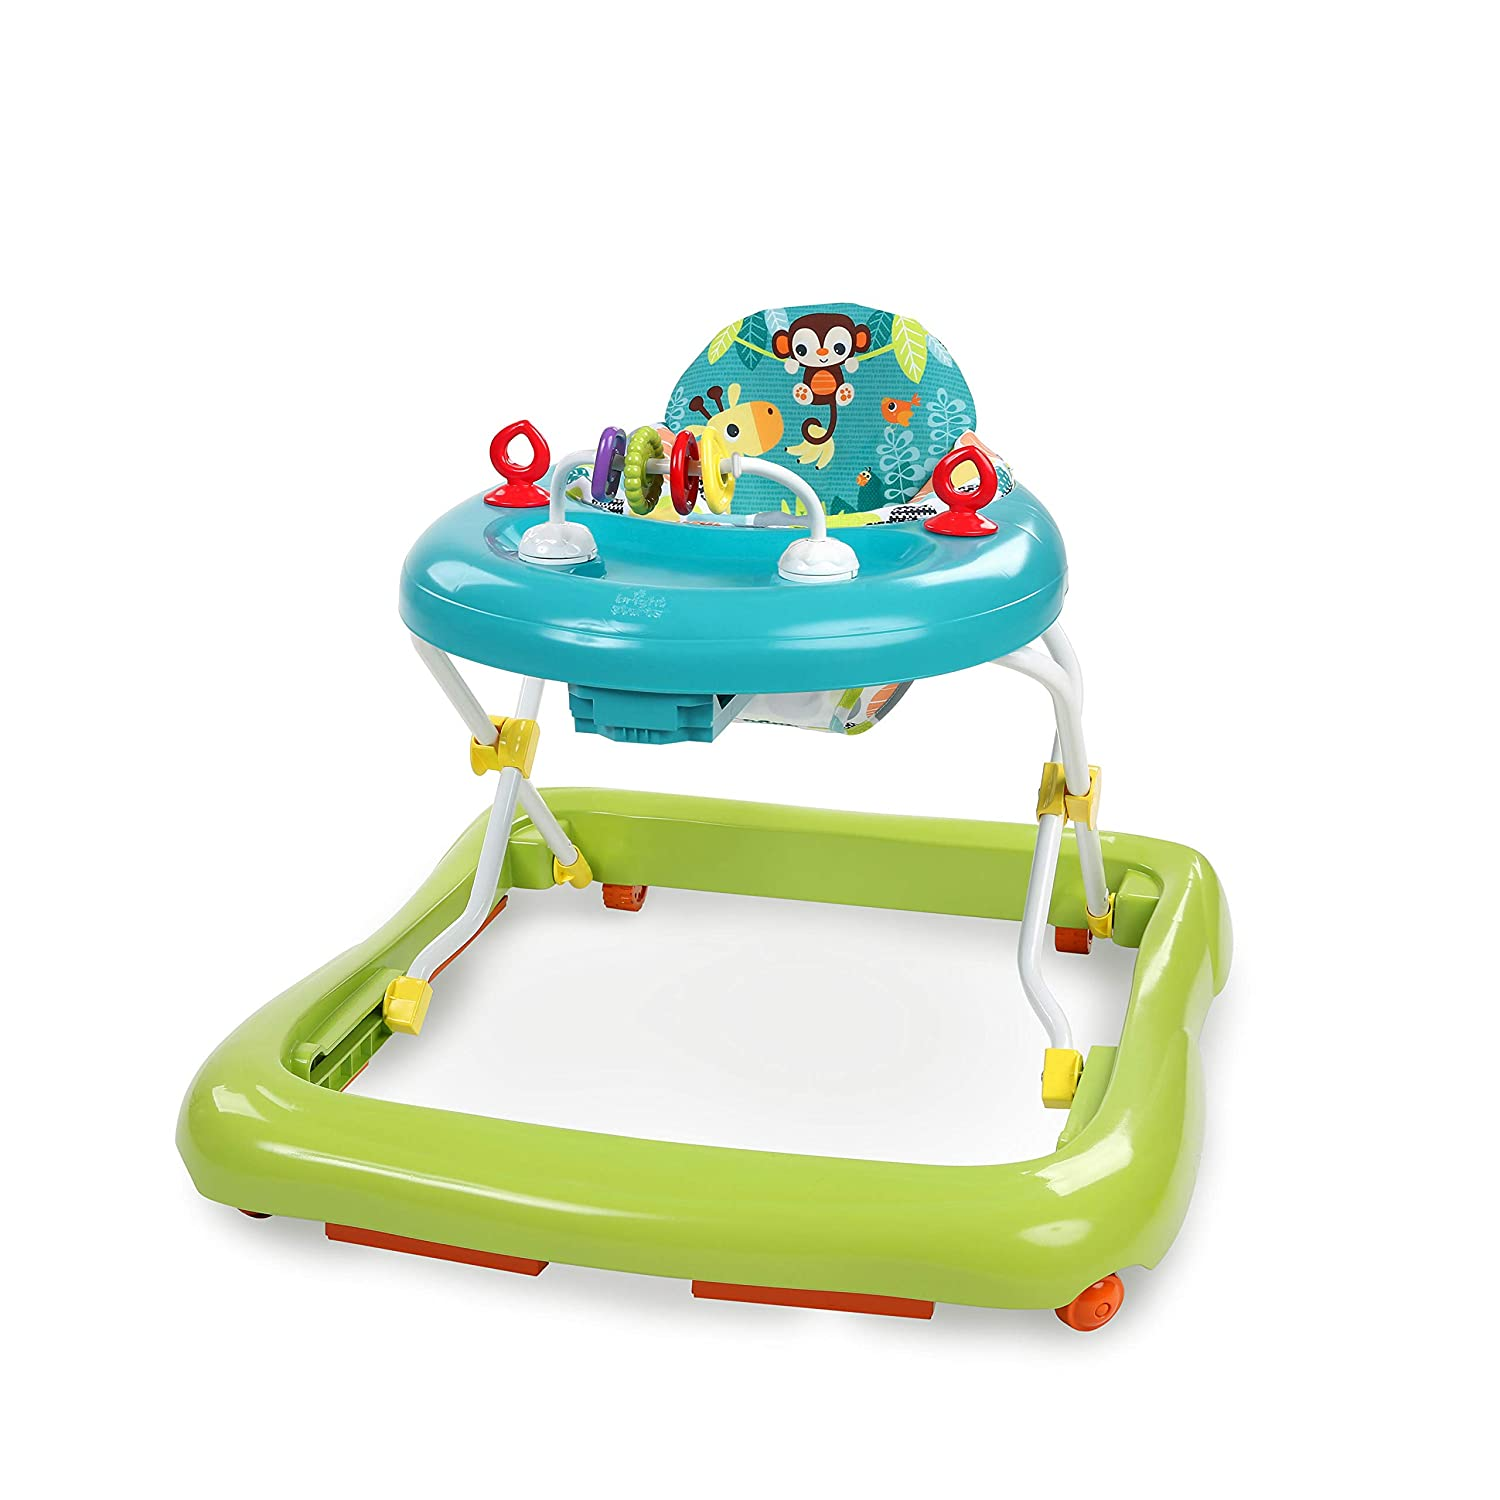 Bright Starts Giggling Safari Walker with Easy Fold Frame for Storage, Ages 6 Months +